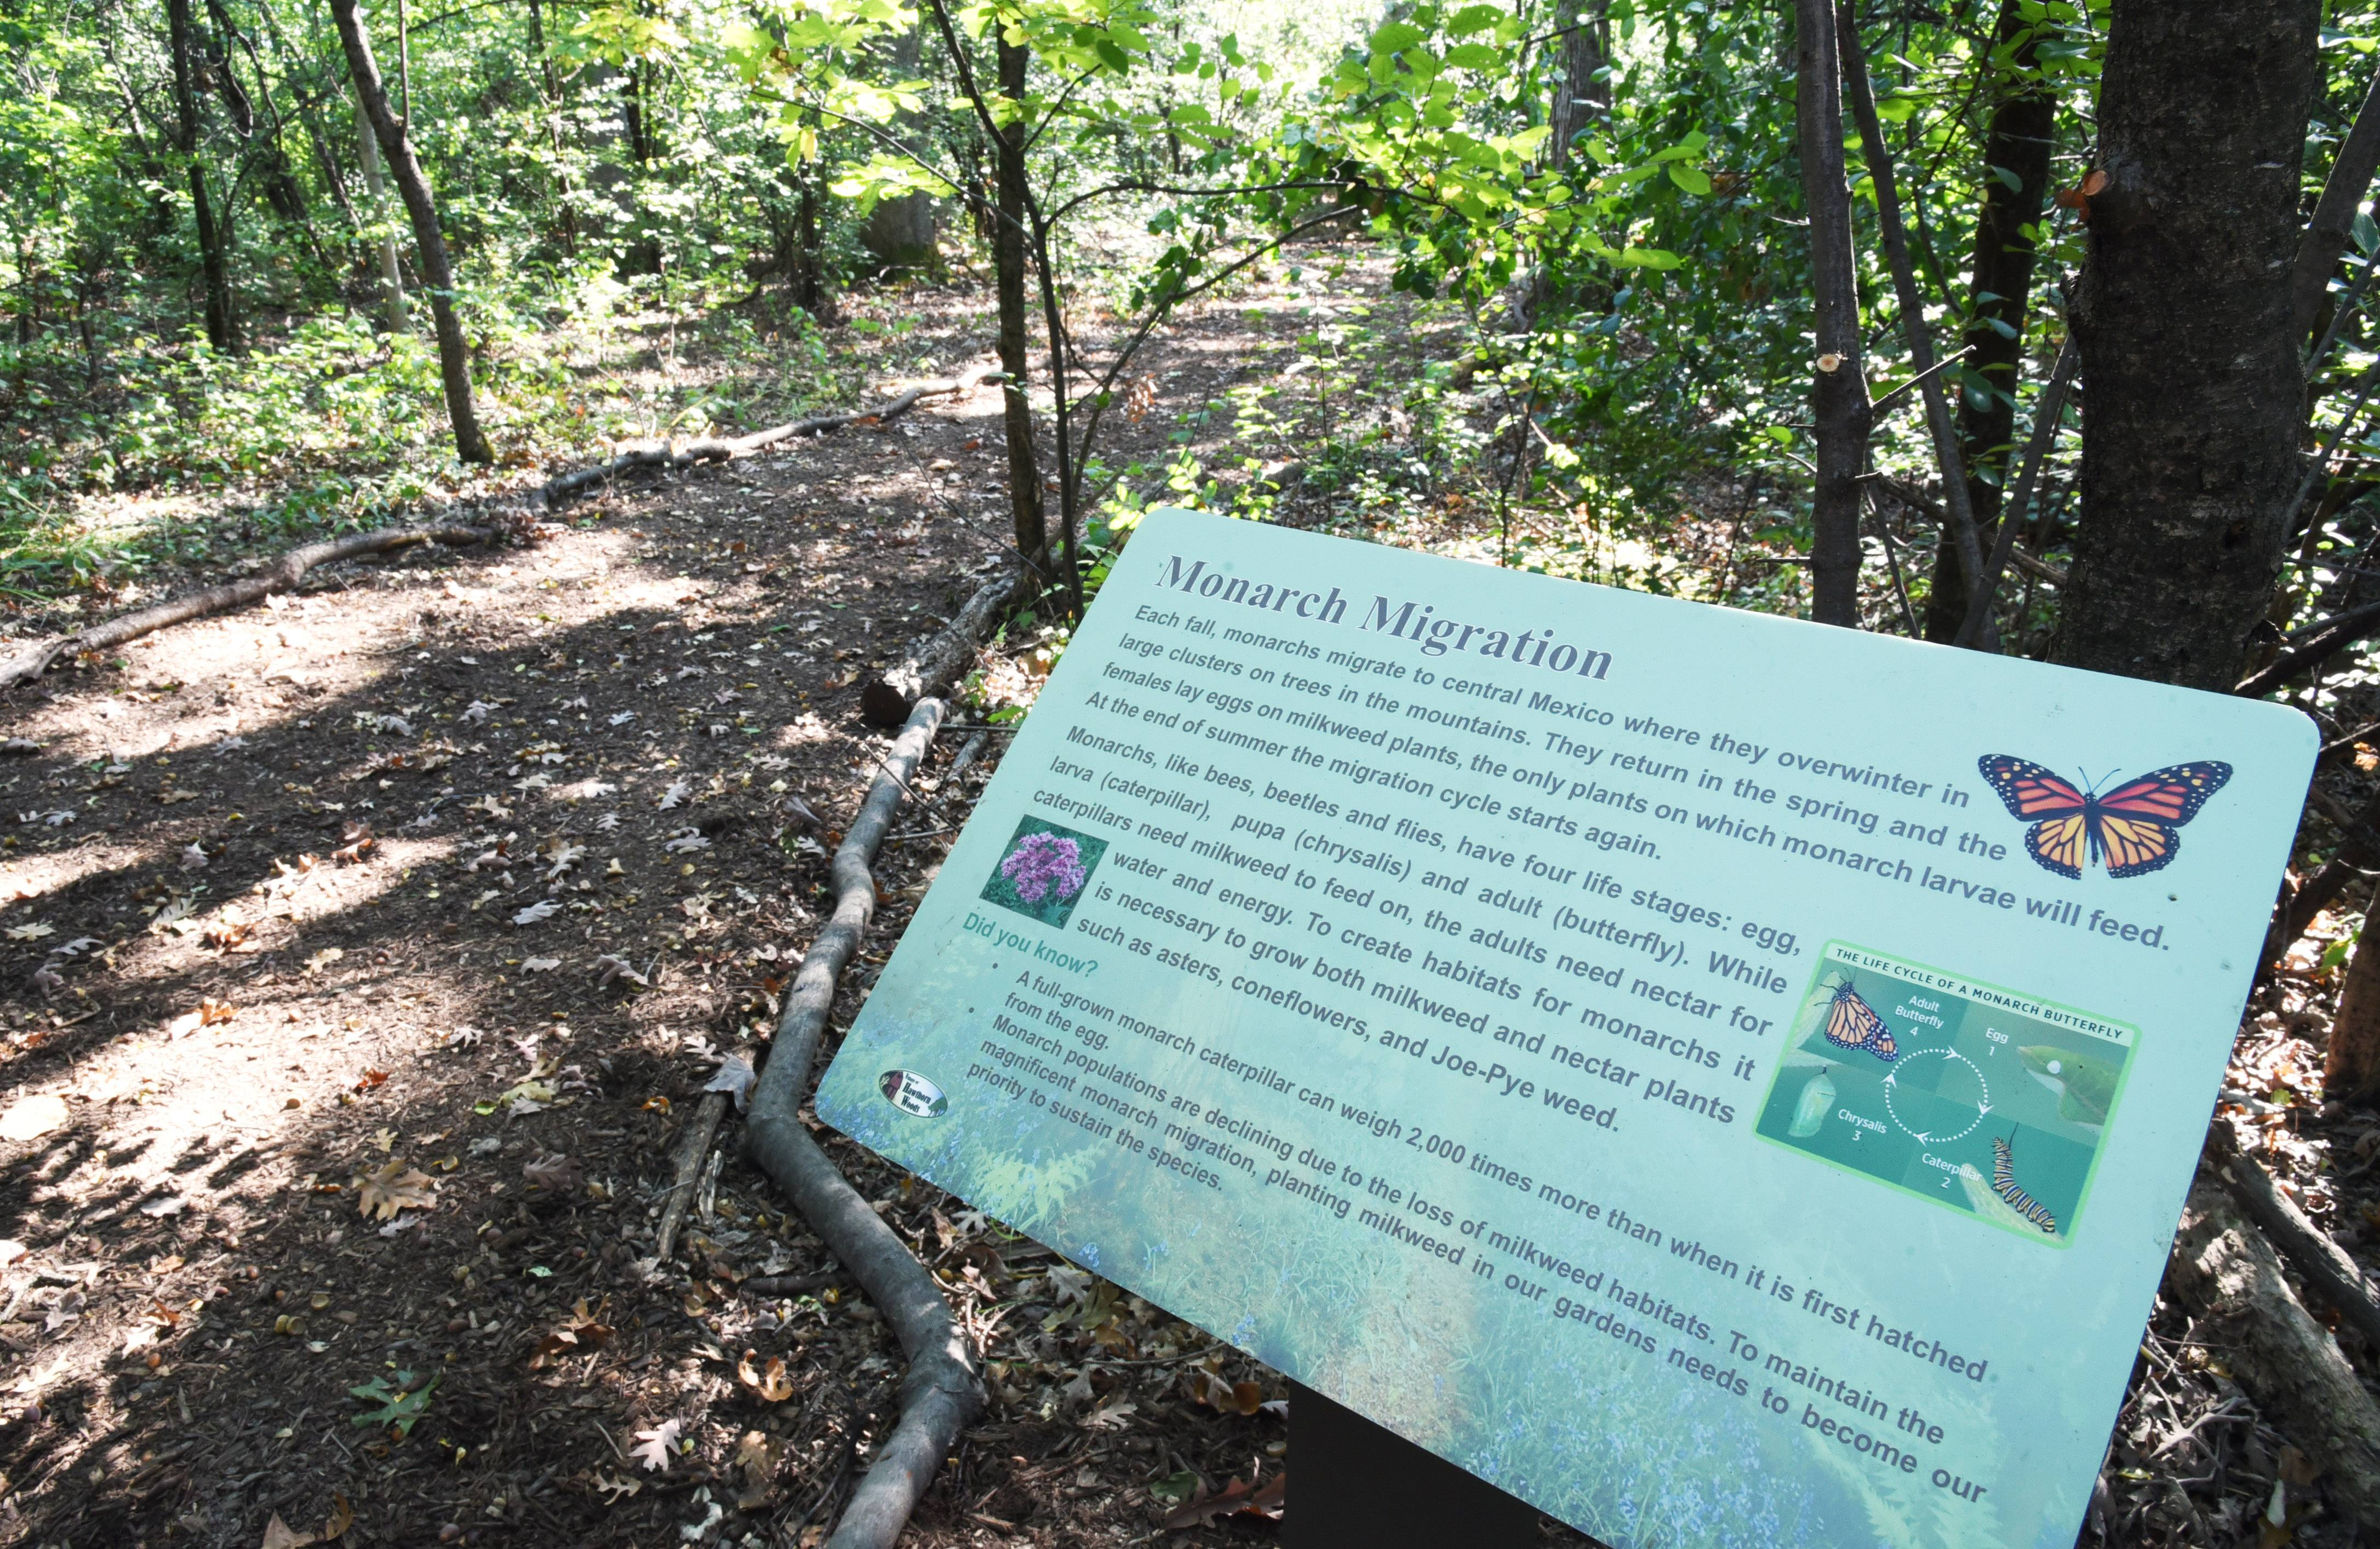 Facts about monarch butterflies are posted along of the Brierwoods Preserve trails in Hawthorn Woods.